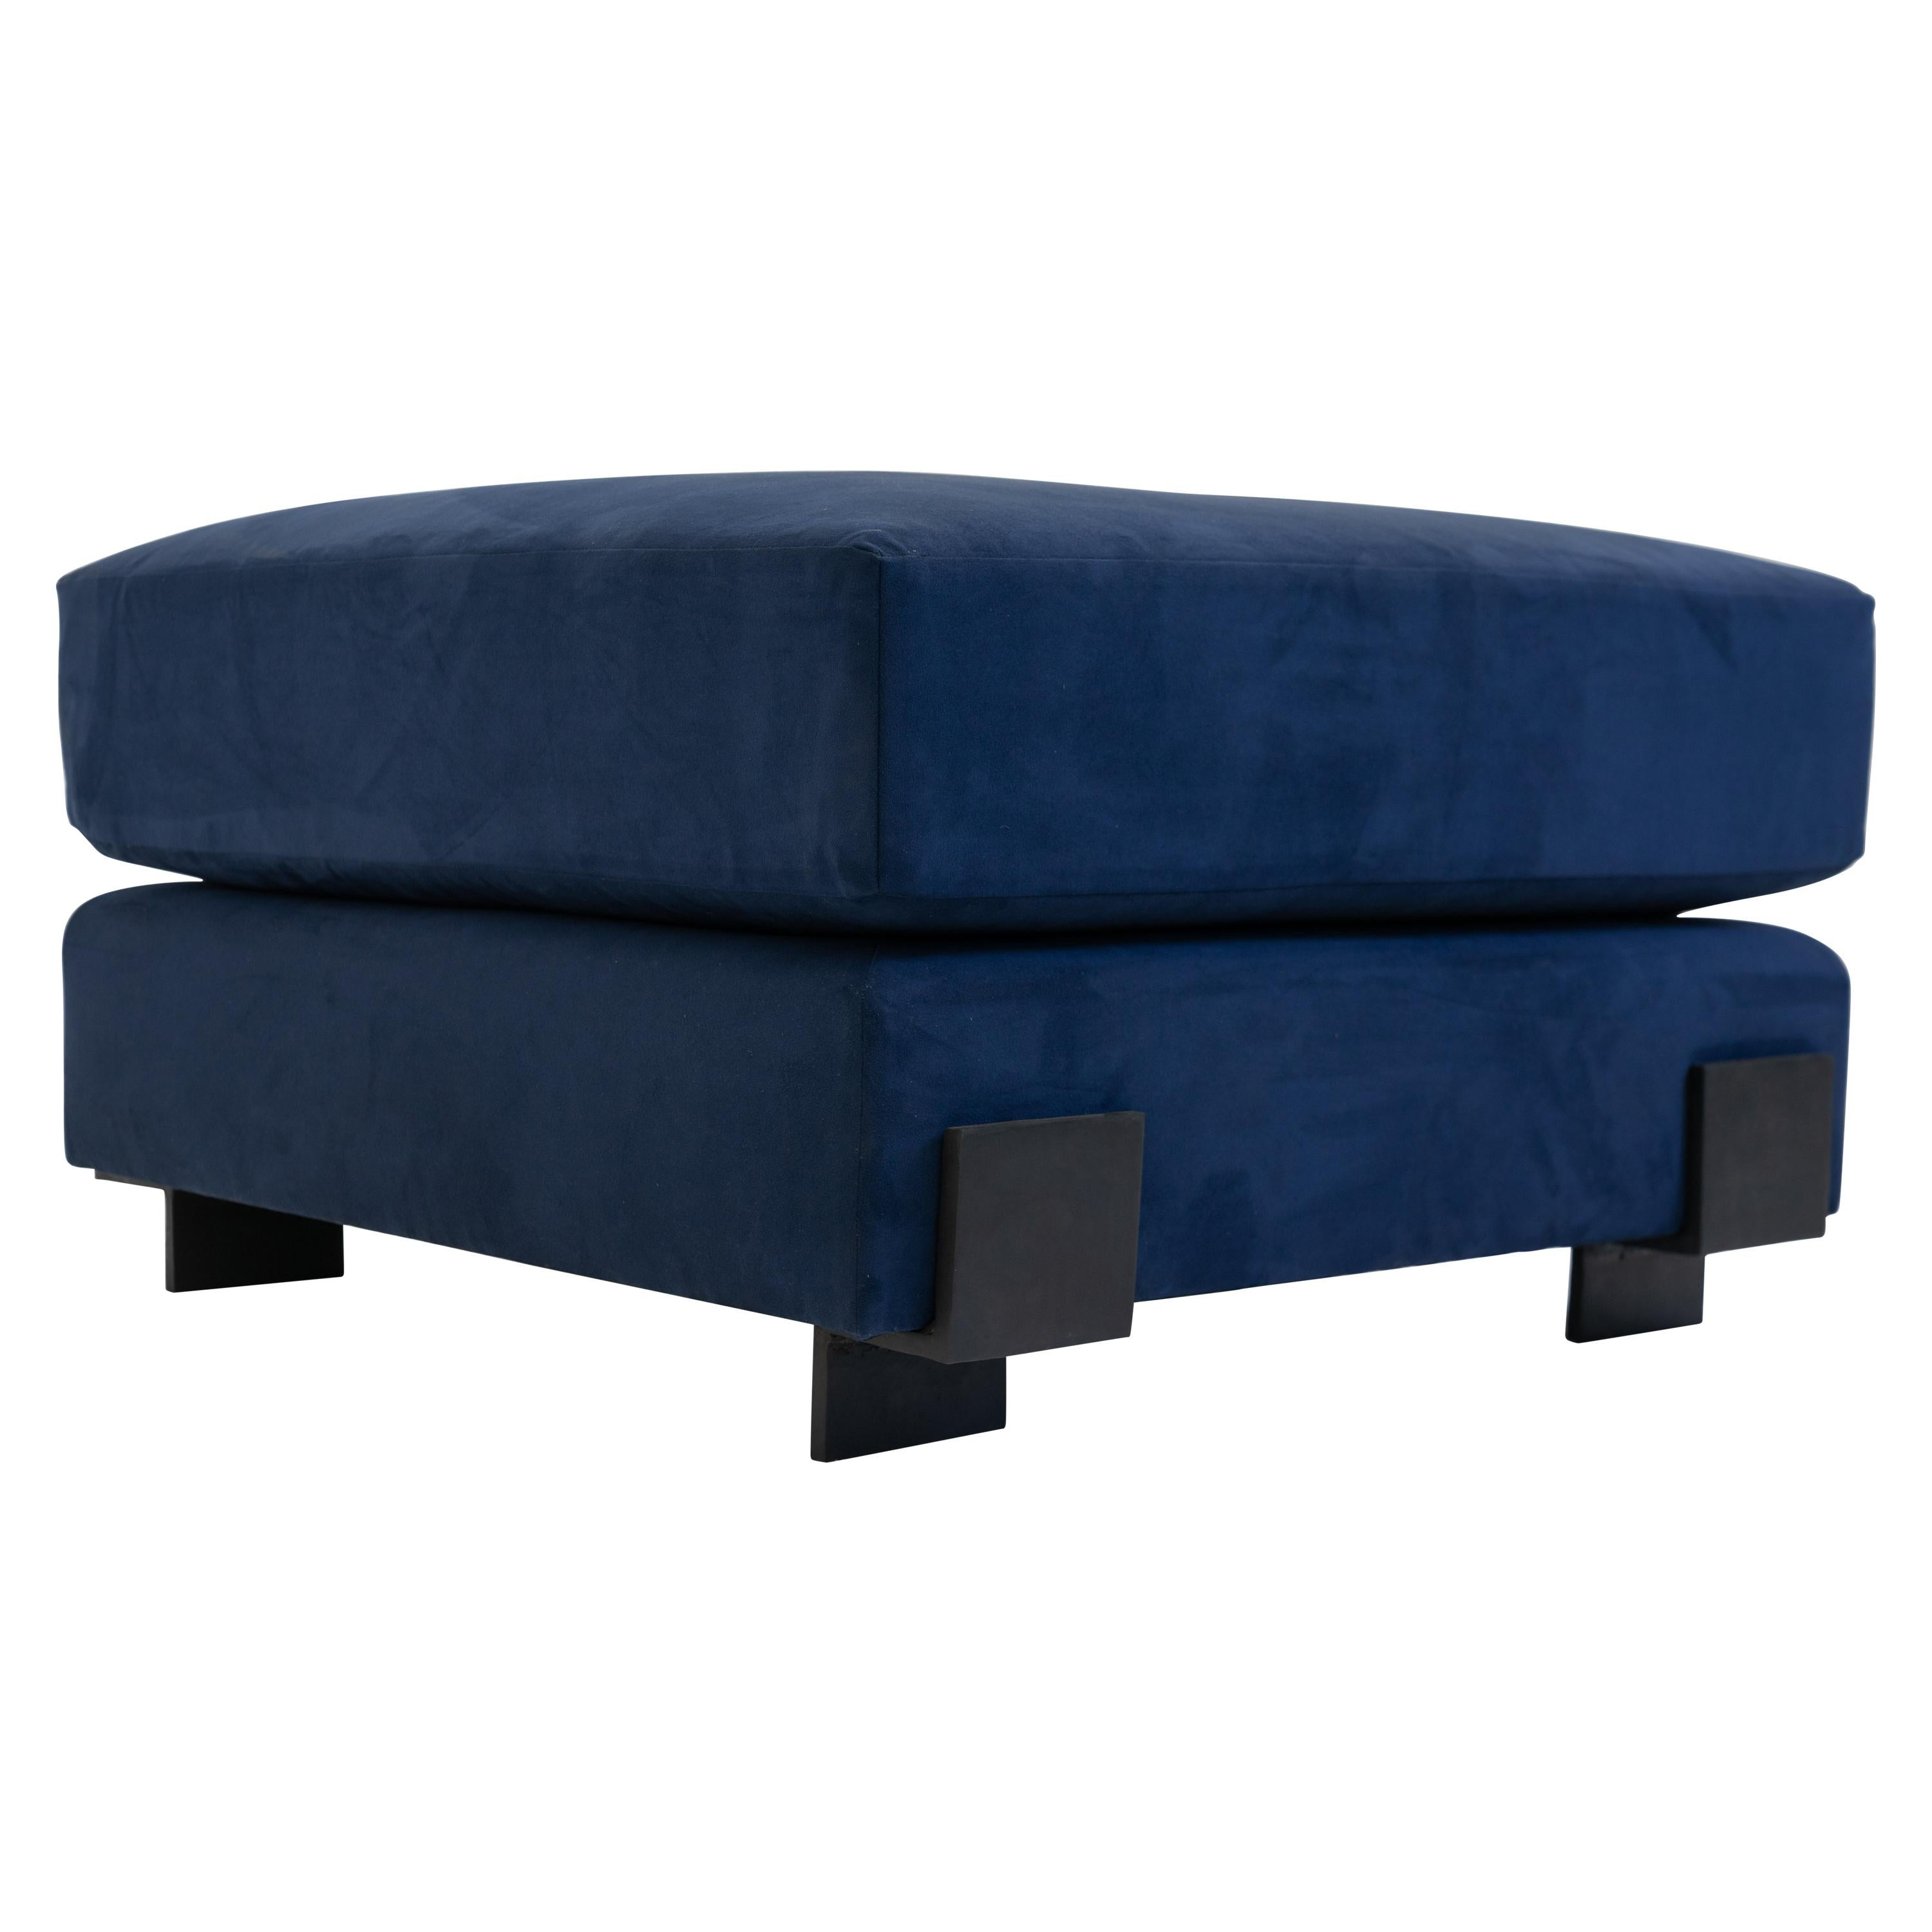 Ottoman Contemporary Down Filling Modern Square with Hand Carved Steel Details